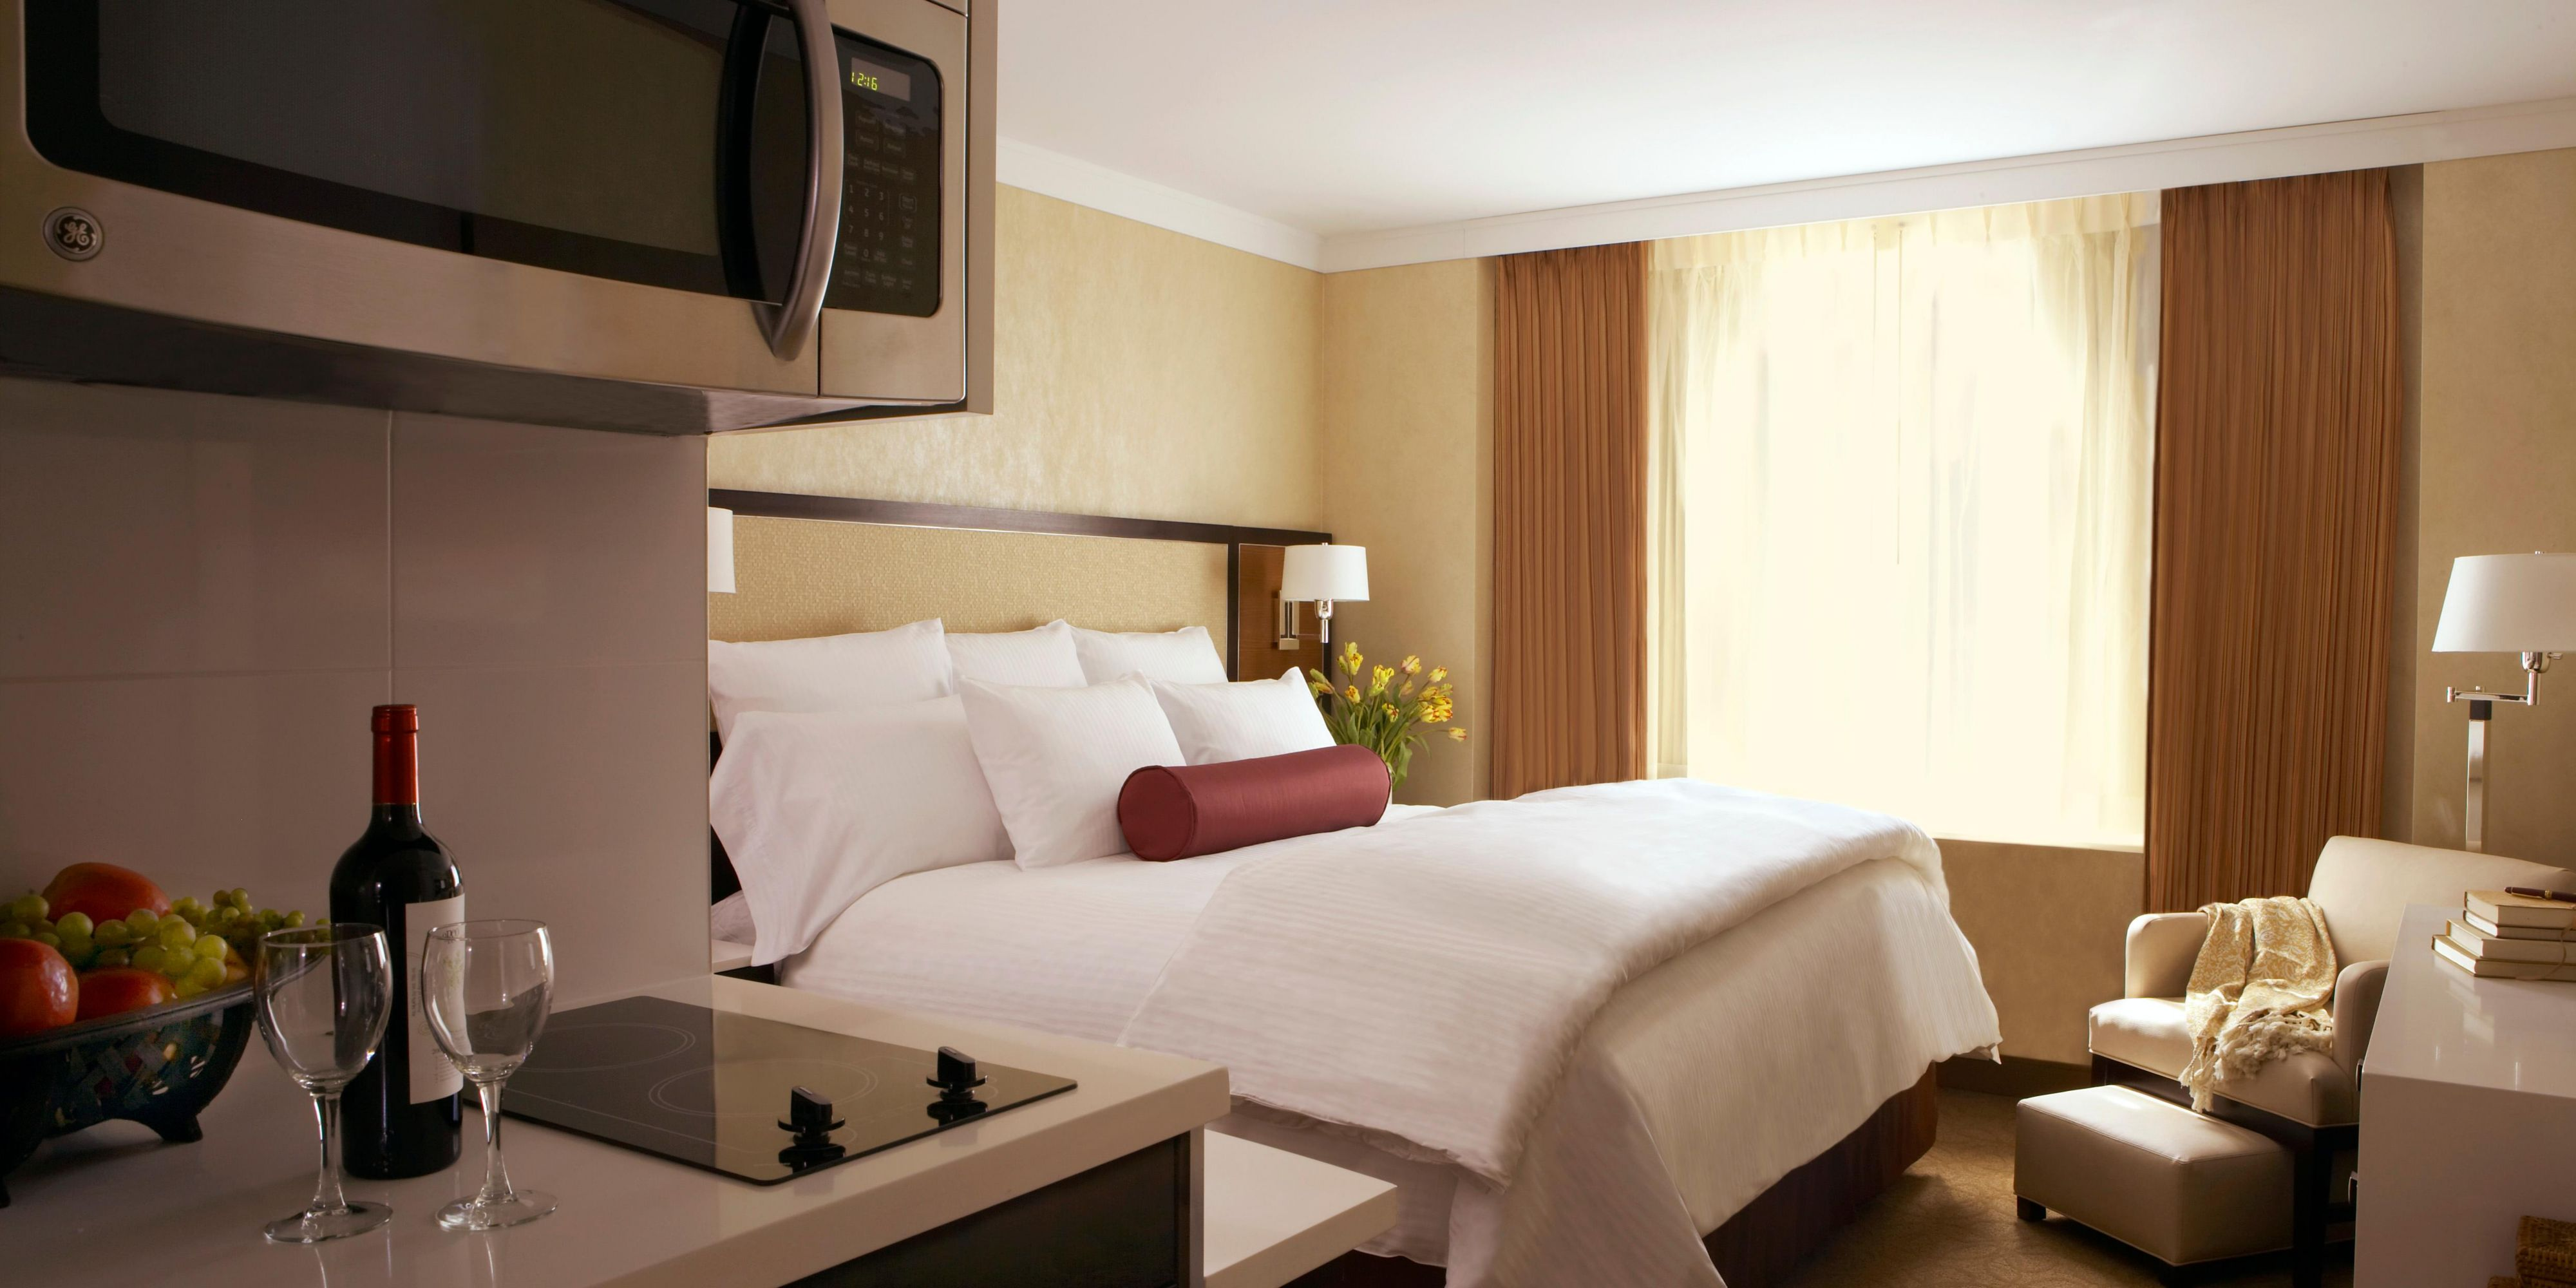 2 Bedroom Bath Hotel New York City Style Ideas Best Suites In